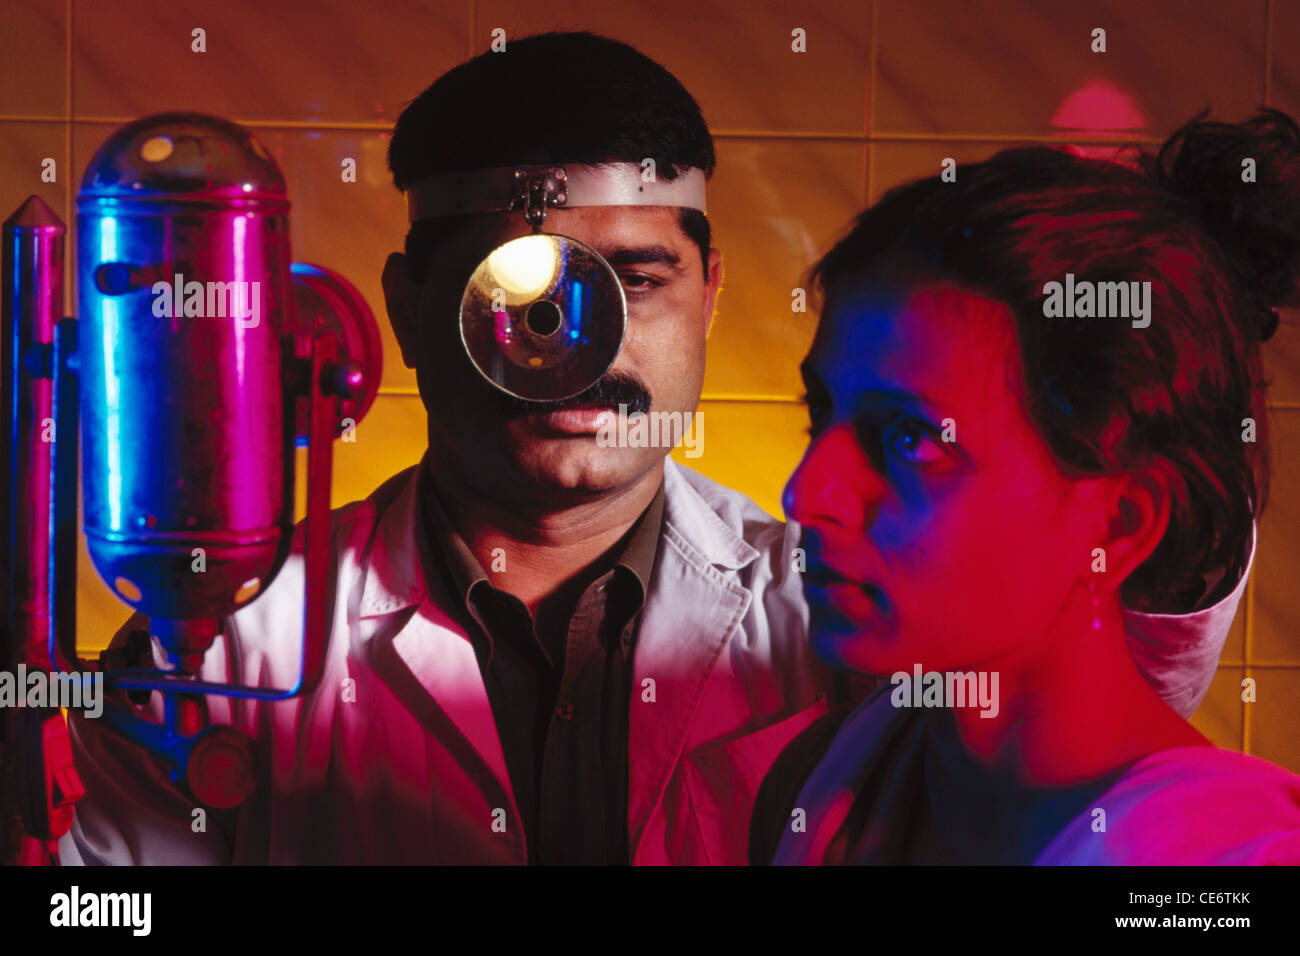 HMA 85149 : ENT ear nose throat specialist doctor checking patient - Stock Image